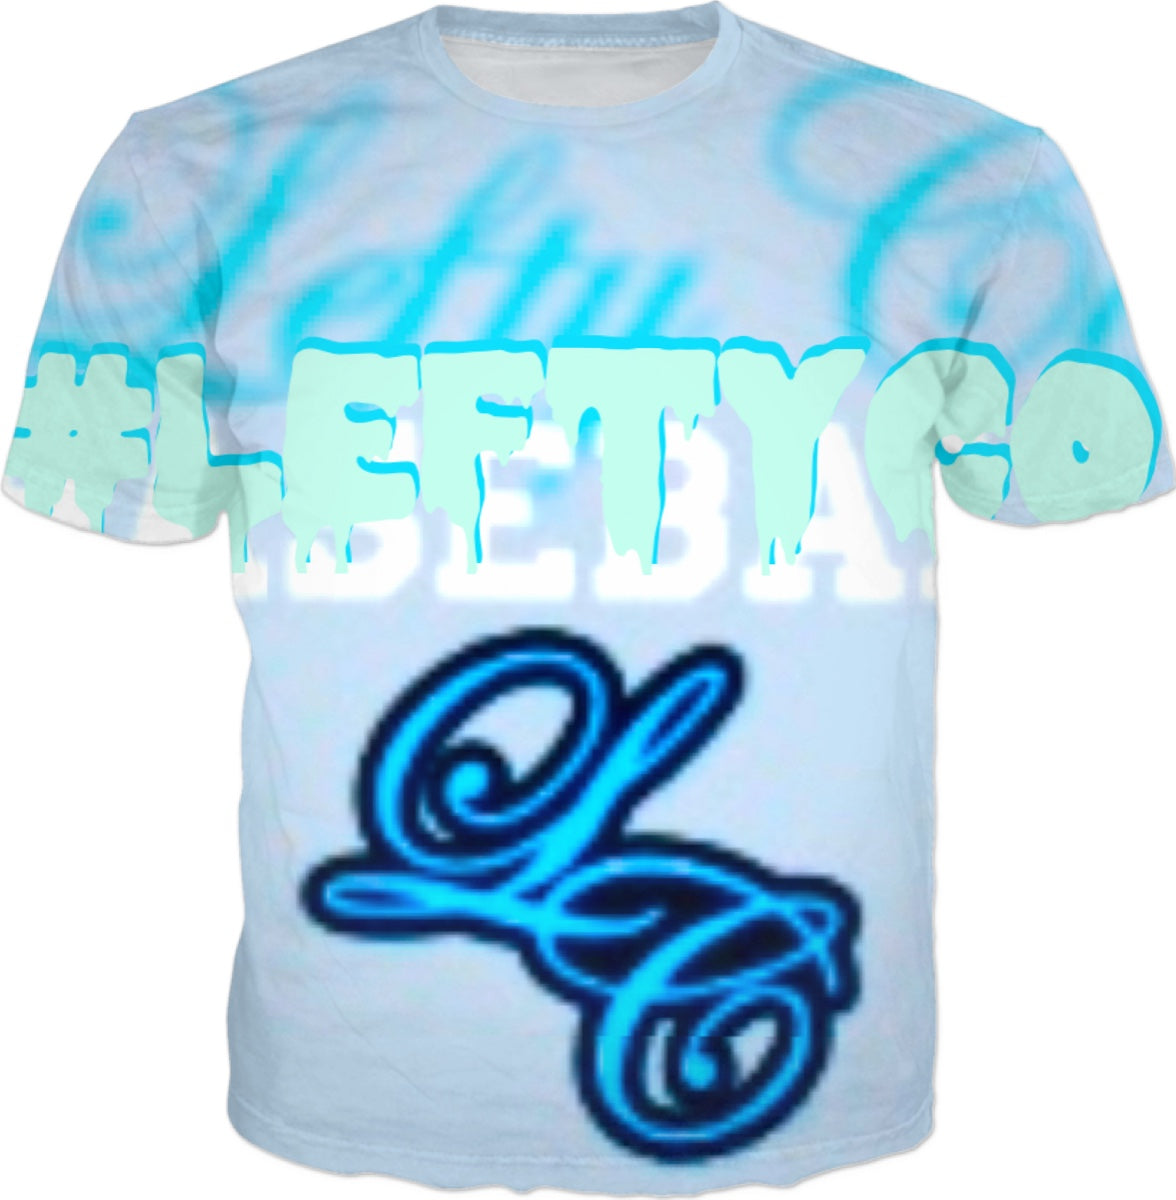 LeftyCo - Big LC T ~ @LEFTYCO t-shirt - leftyco